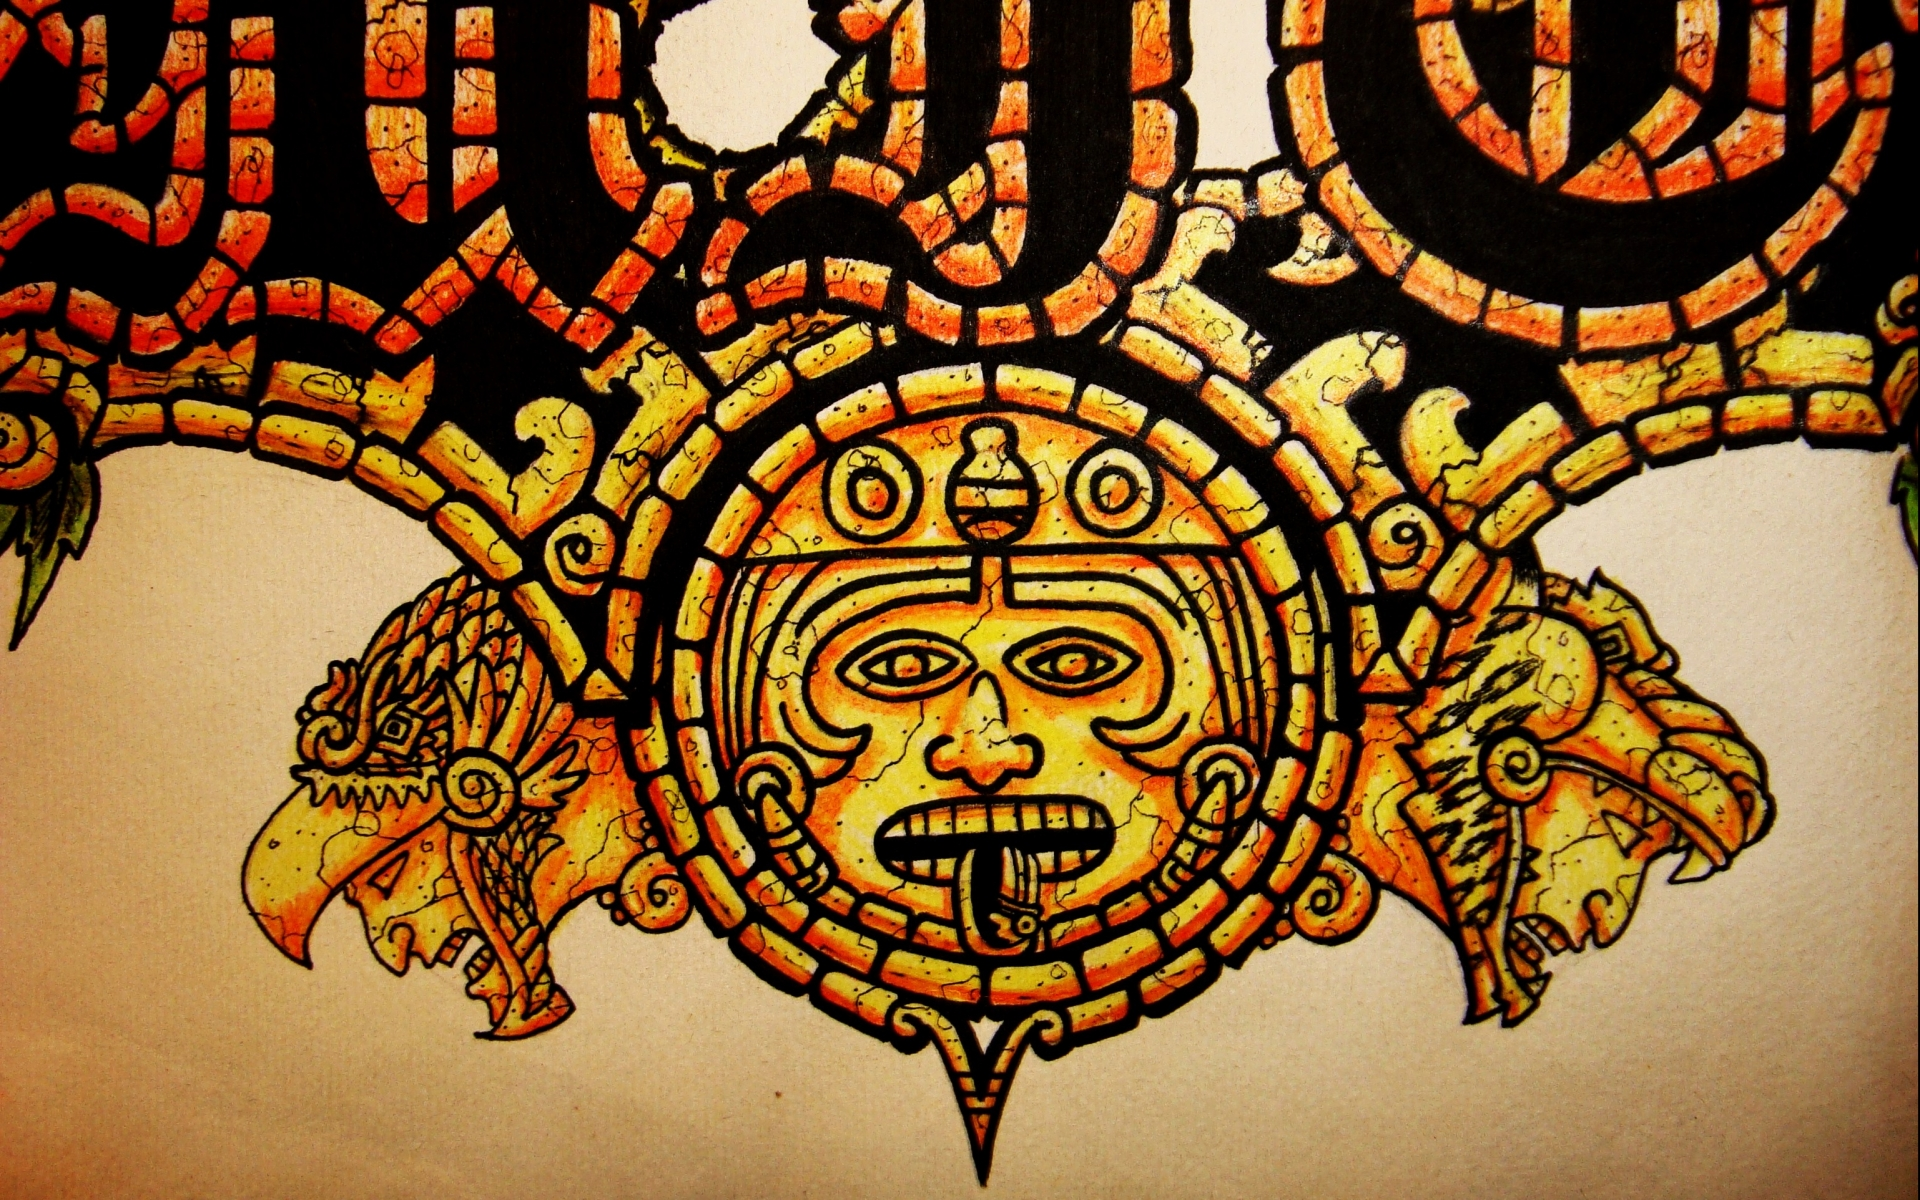 an essay on cultural artistry and the aztec art Ielts writing task 2: 'artists' essay art related projects and works reflects the culture, heritage and history these art works are playing a key role in educating the public about the the essay asked for state funding for artist and not art do you not think that they are two.